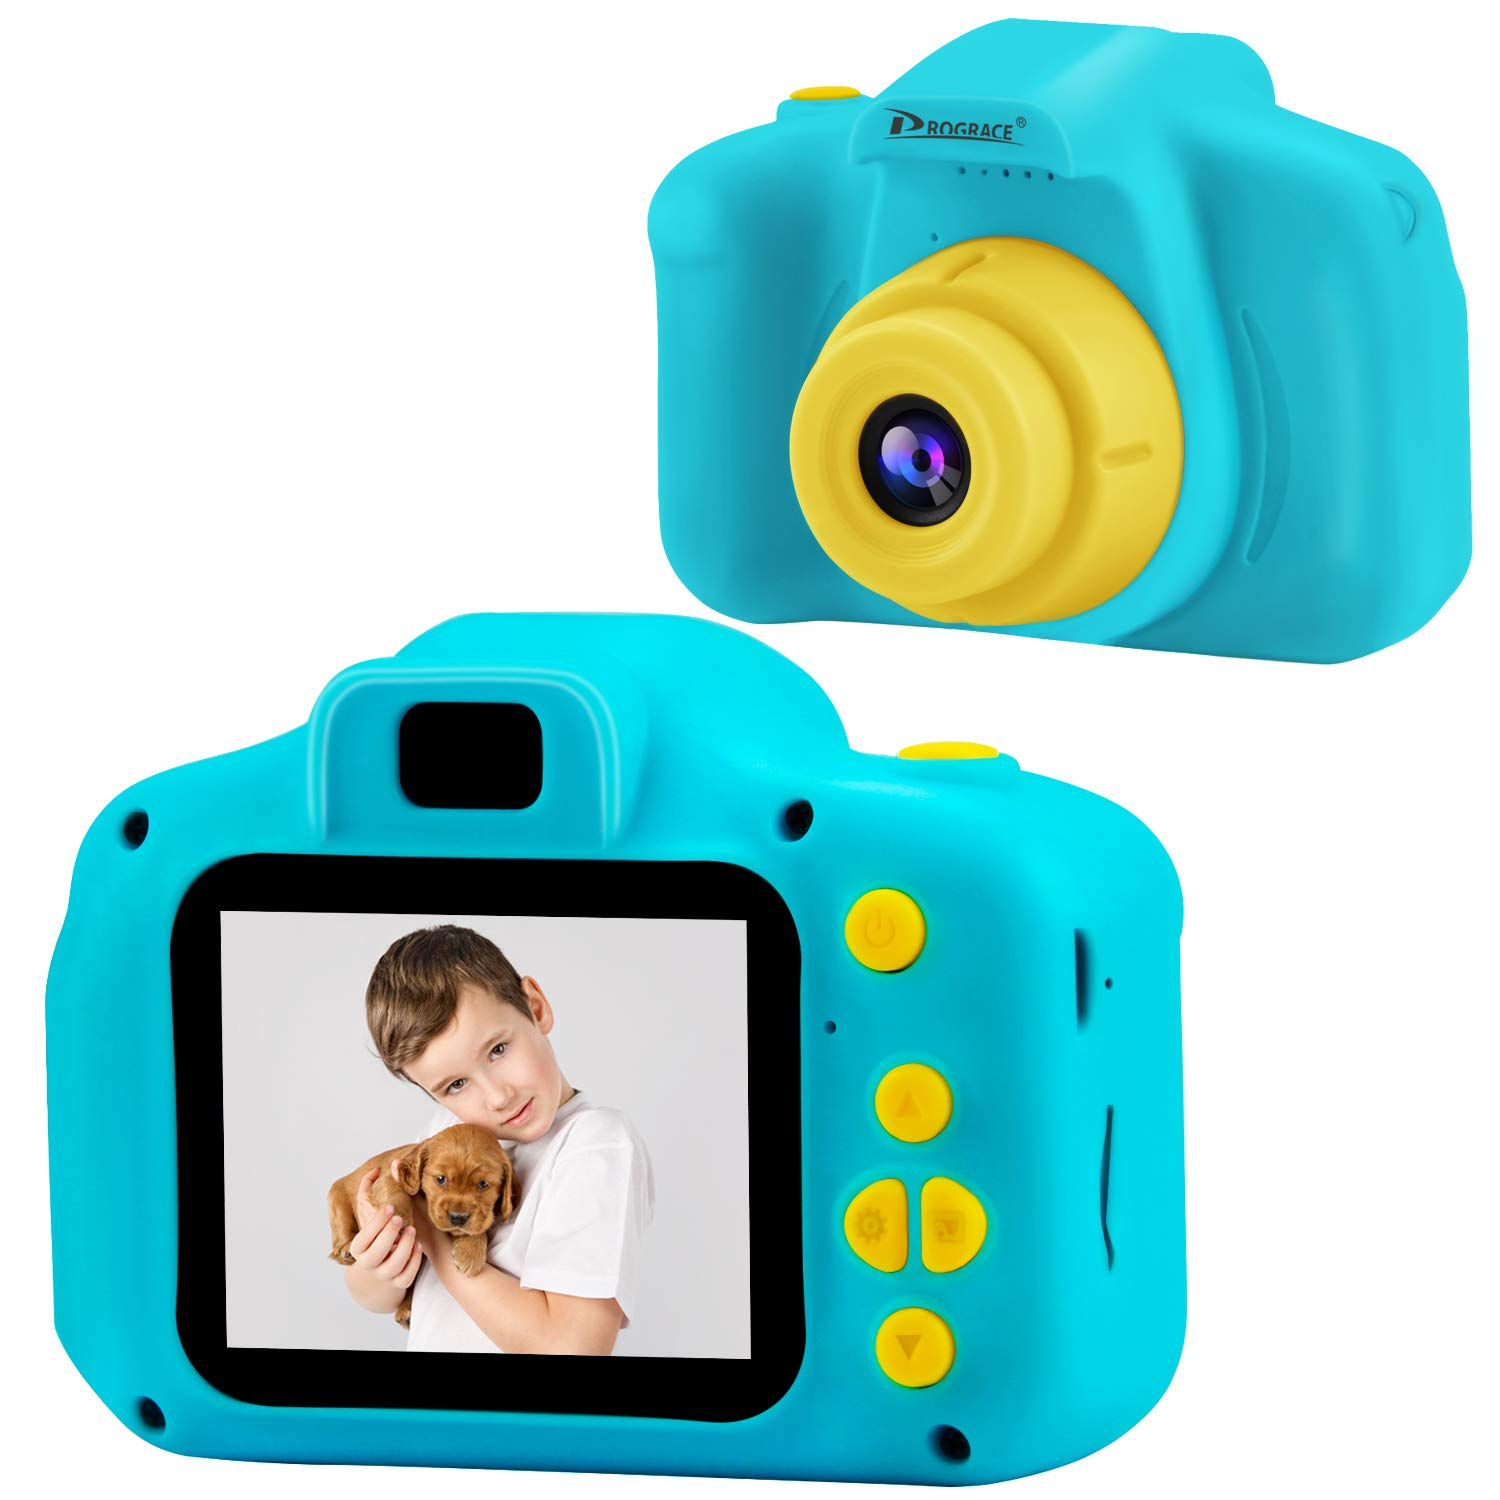 Small but great kids digital camera!